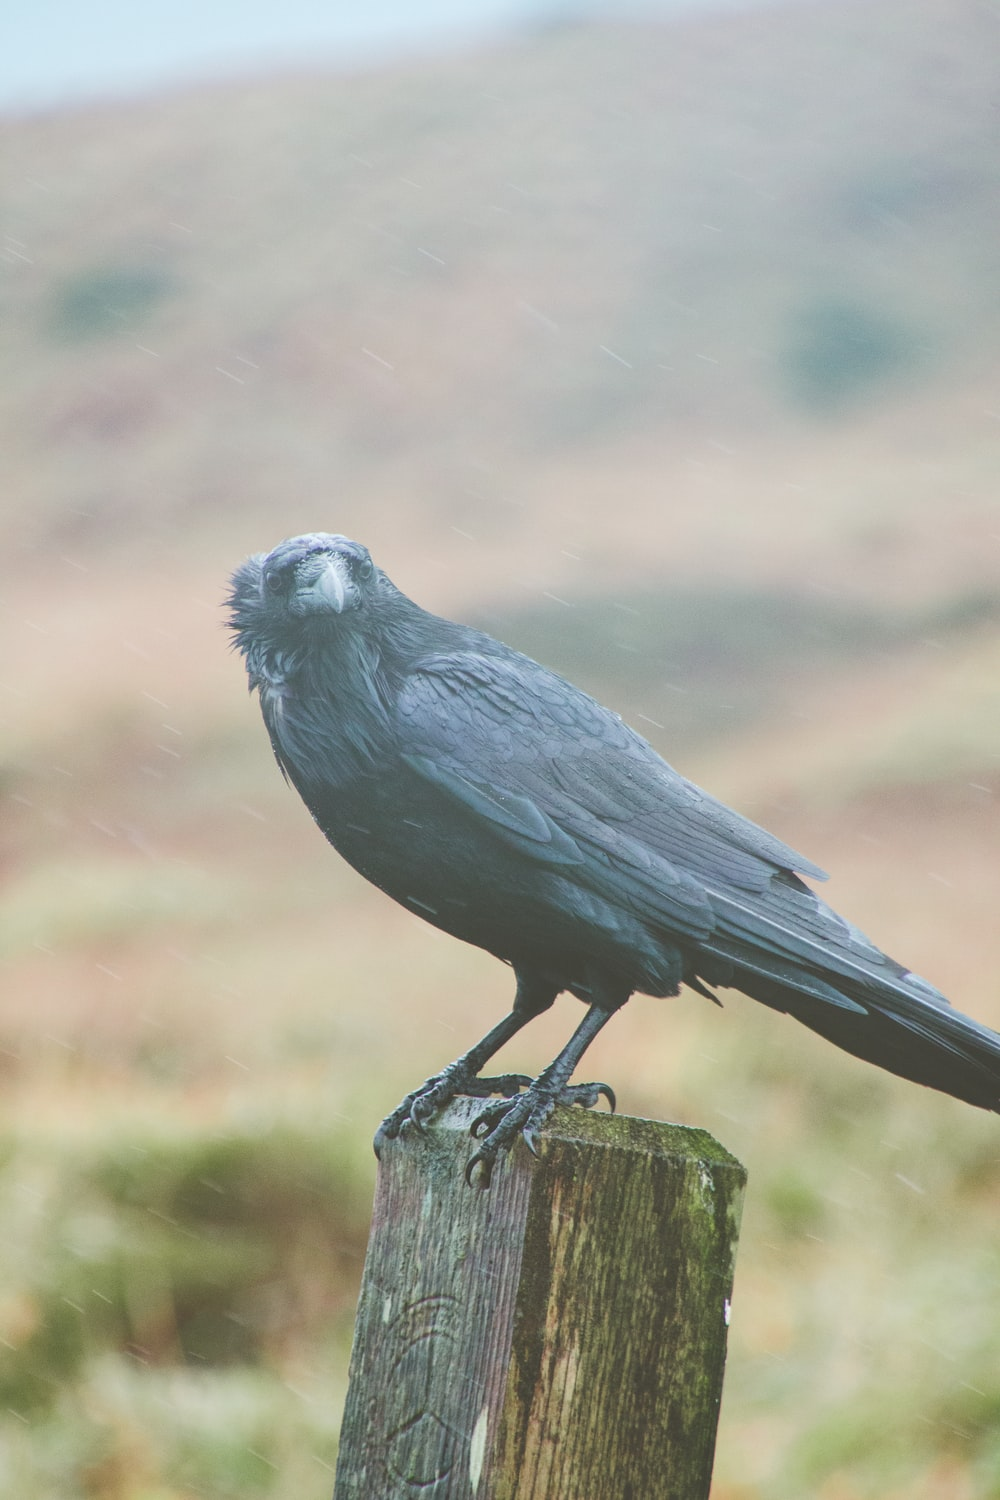 black and gray bird on brown wooden stick